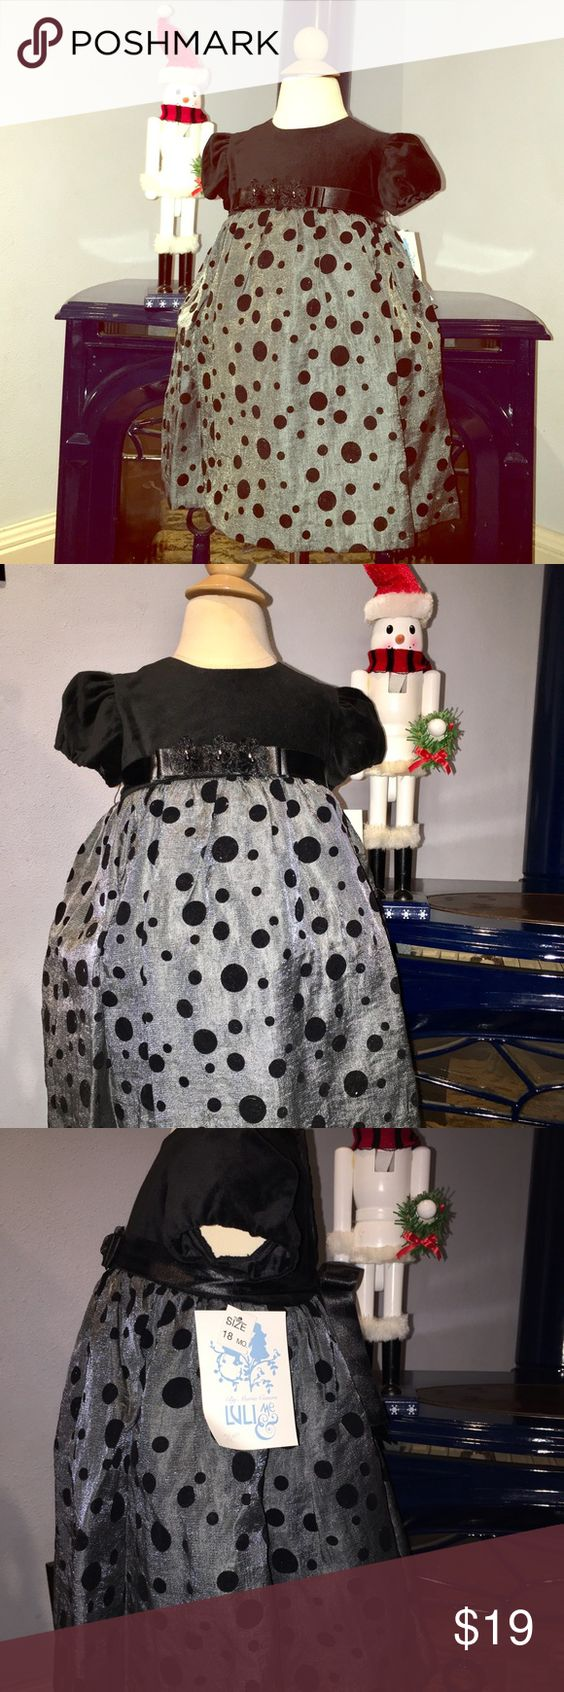 Christmas dress boutiques - Christmasdress Luli Me Southern Boutique Gift This Is The Sweetest Little Christmas Dress For